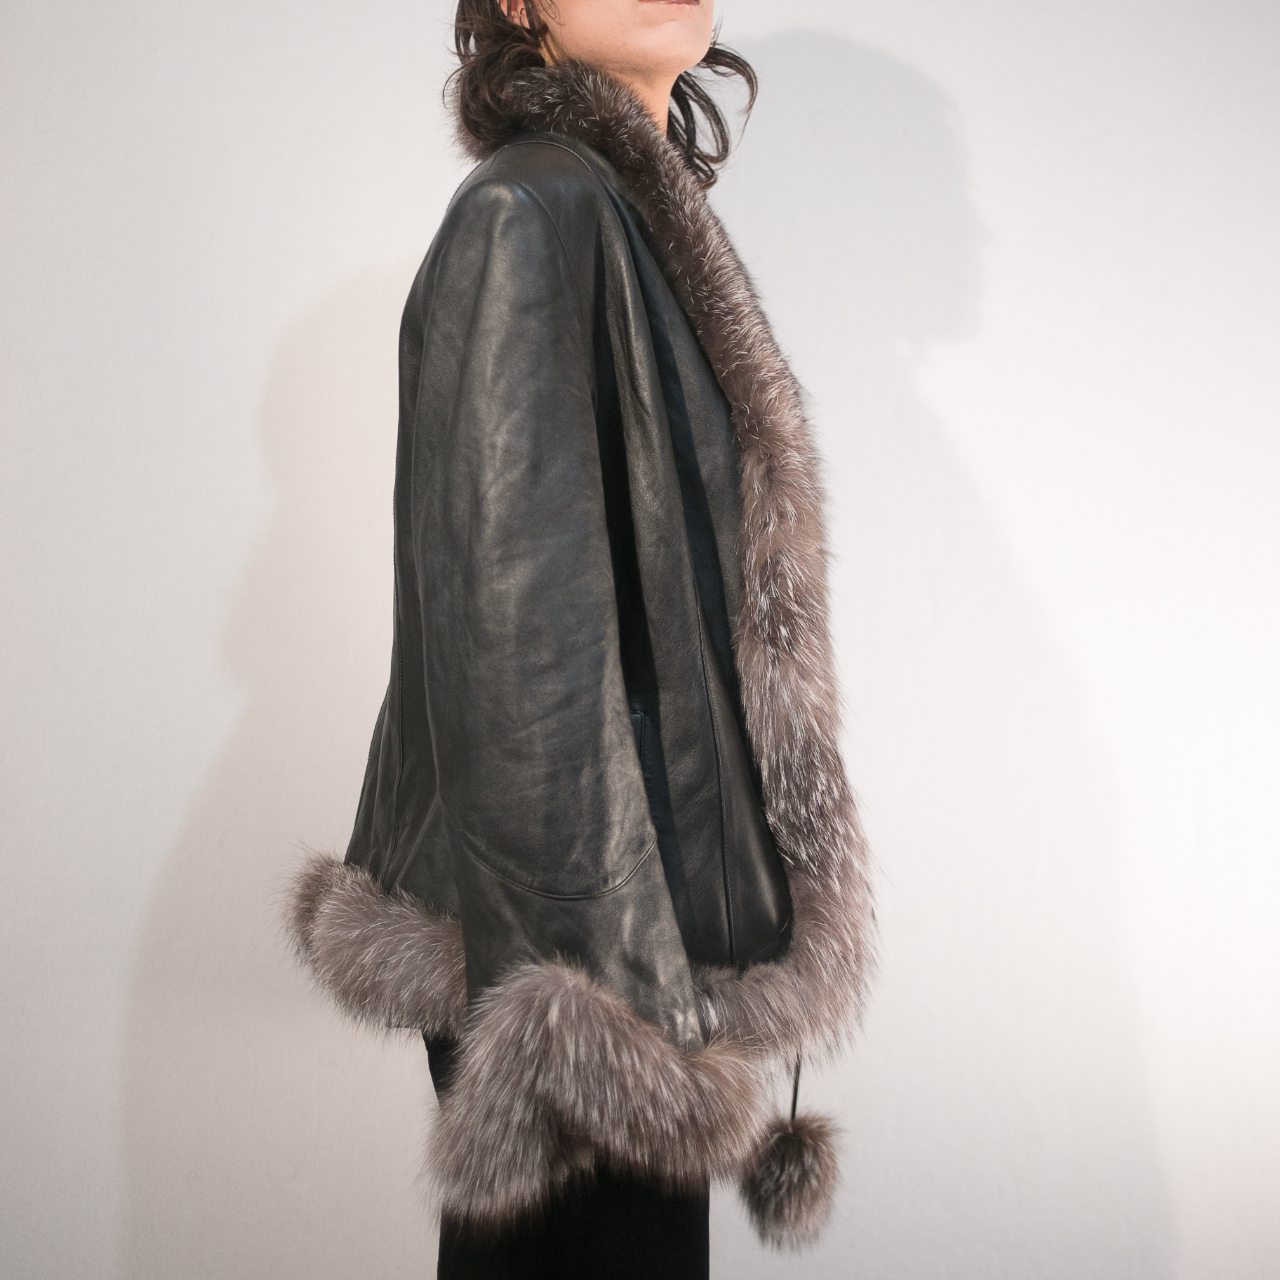 Genuine Leather and real fur trim coat